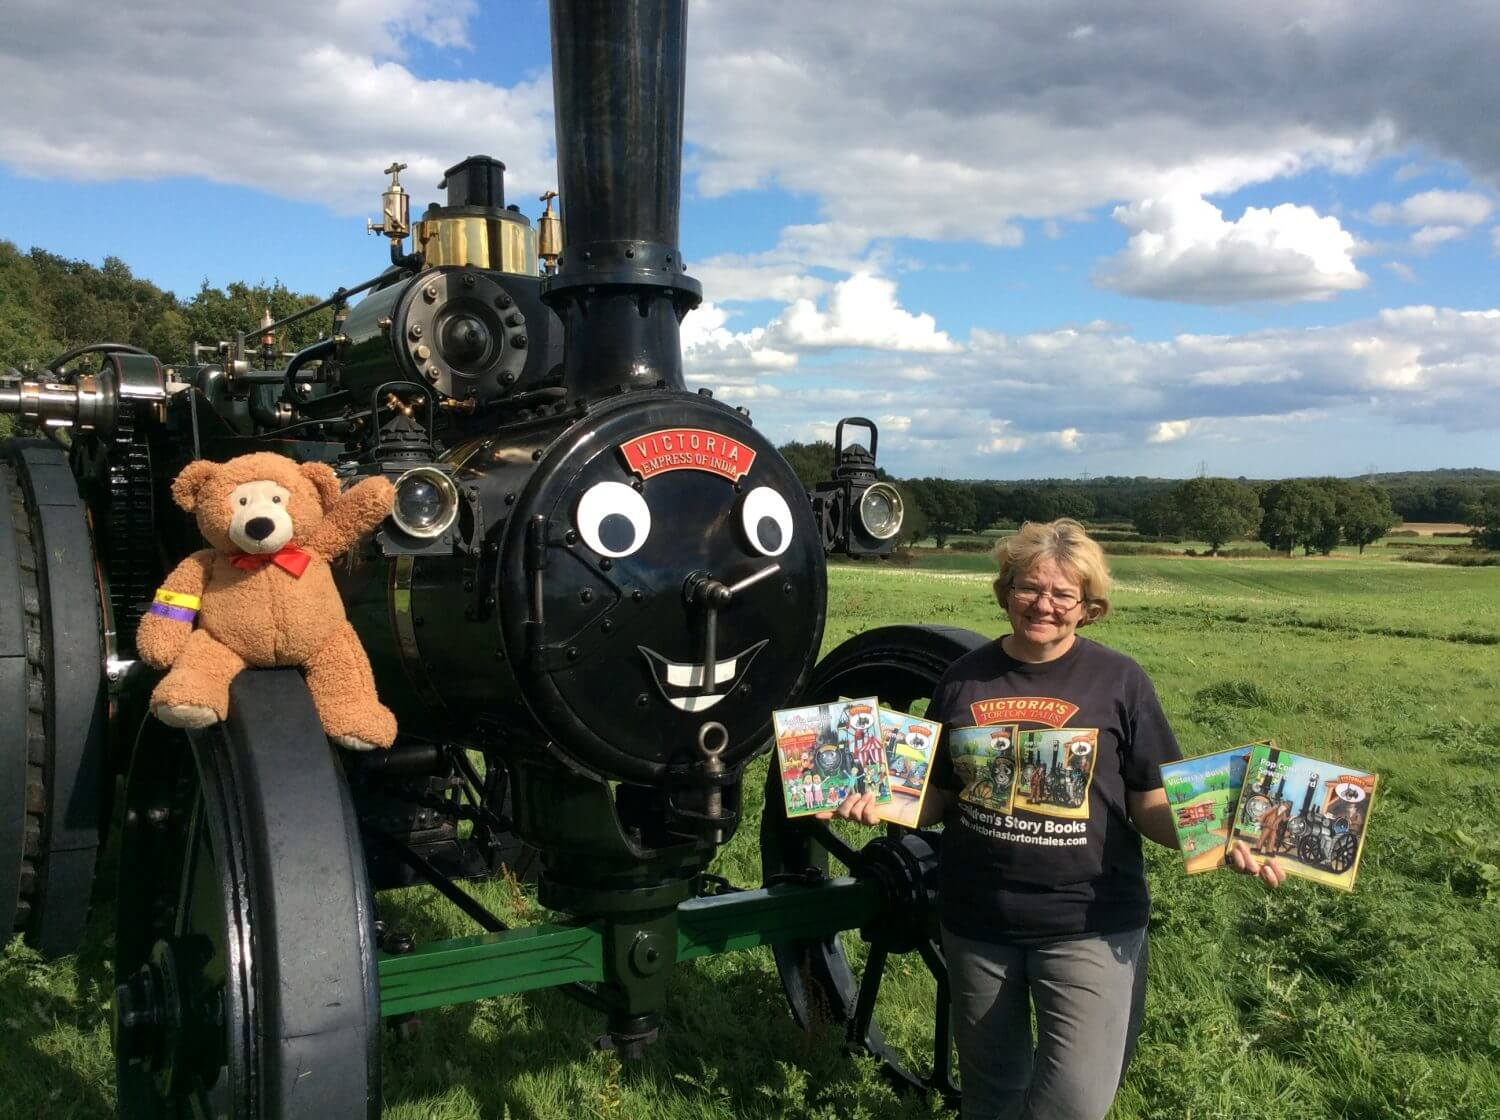 Wendy Wakelin with Victoria the traction engine, star of Victoria's Torton Tales, and new character Colin the Teddy Bear